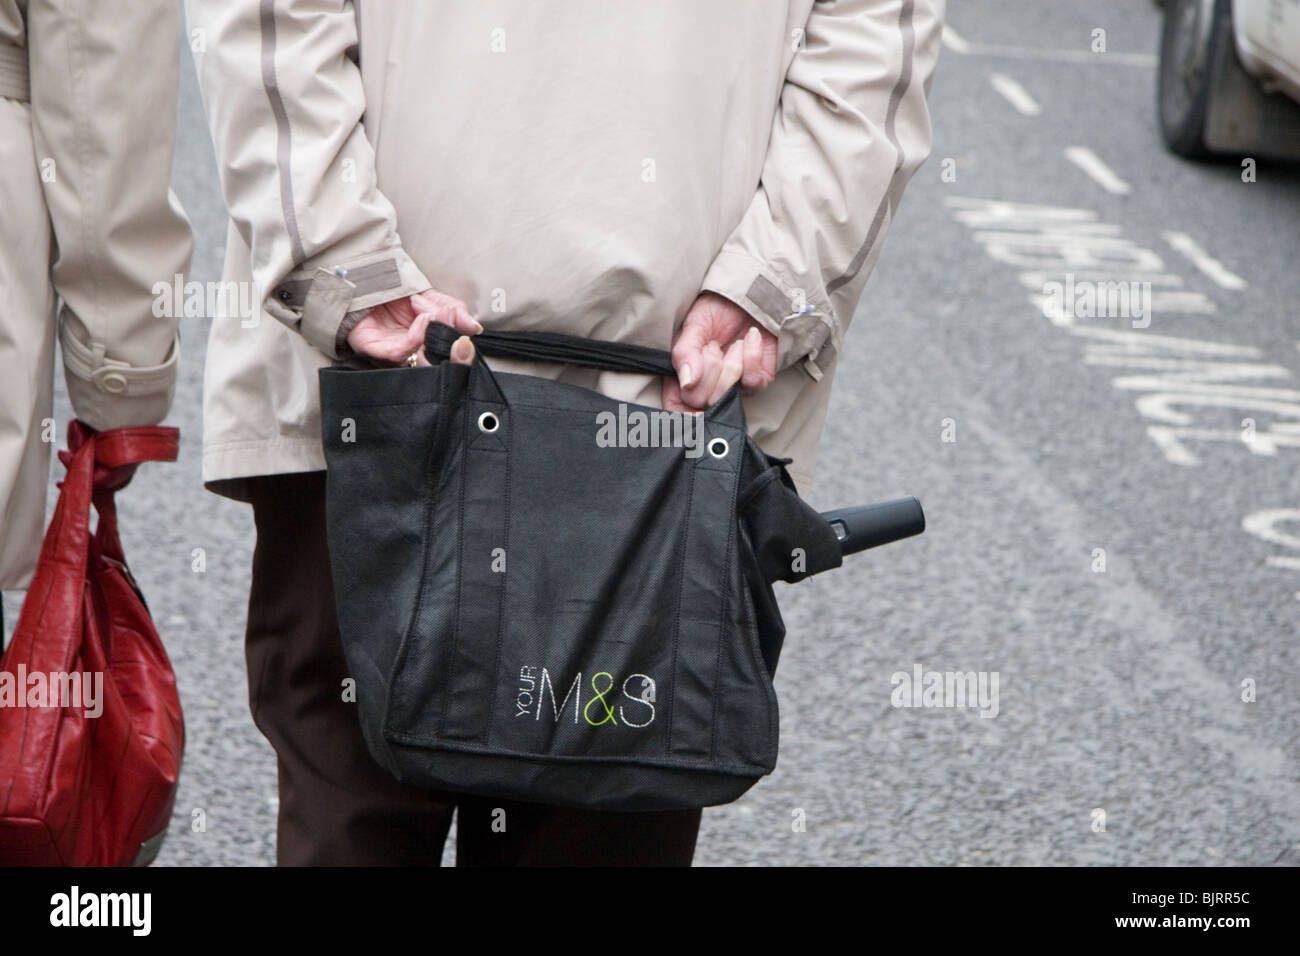 a4d7a0cd4f5b Close-up of an older woman carrying a Marks and Spencer shopping bag - Stock